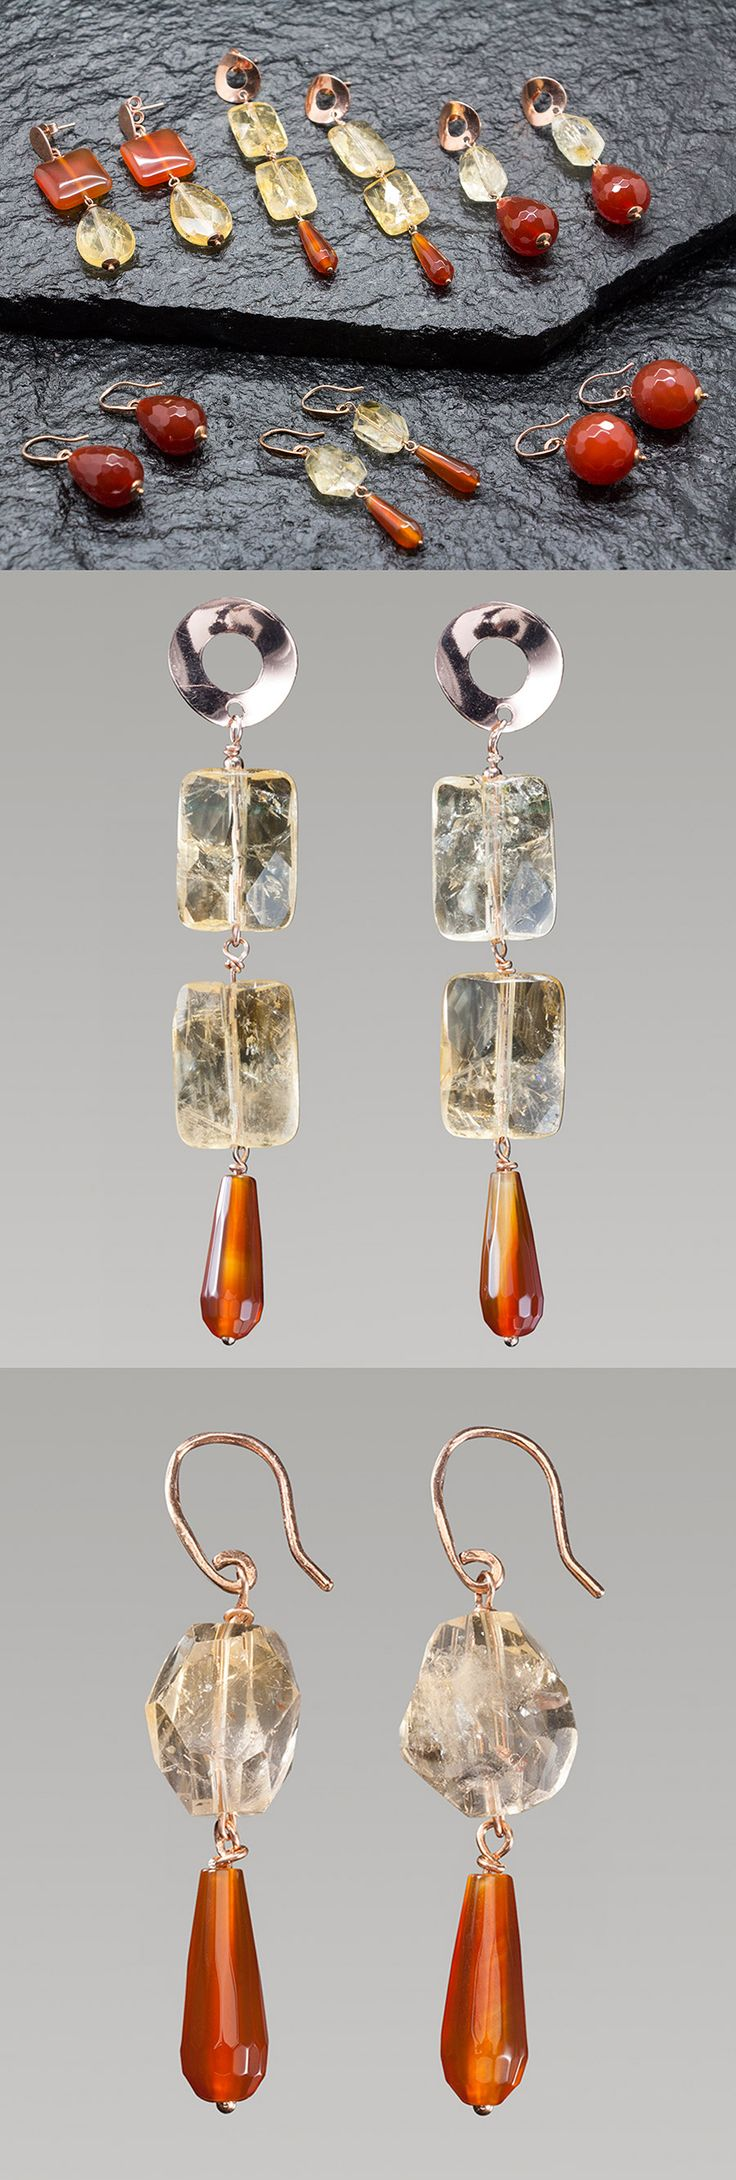 Handmade Earrings composition! All handmade in Italy with Silver 925, without Nichel!! Sipping free! Join on our website: http://www.antogioielli.it/